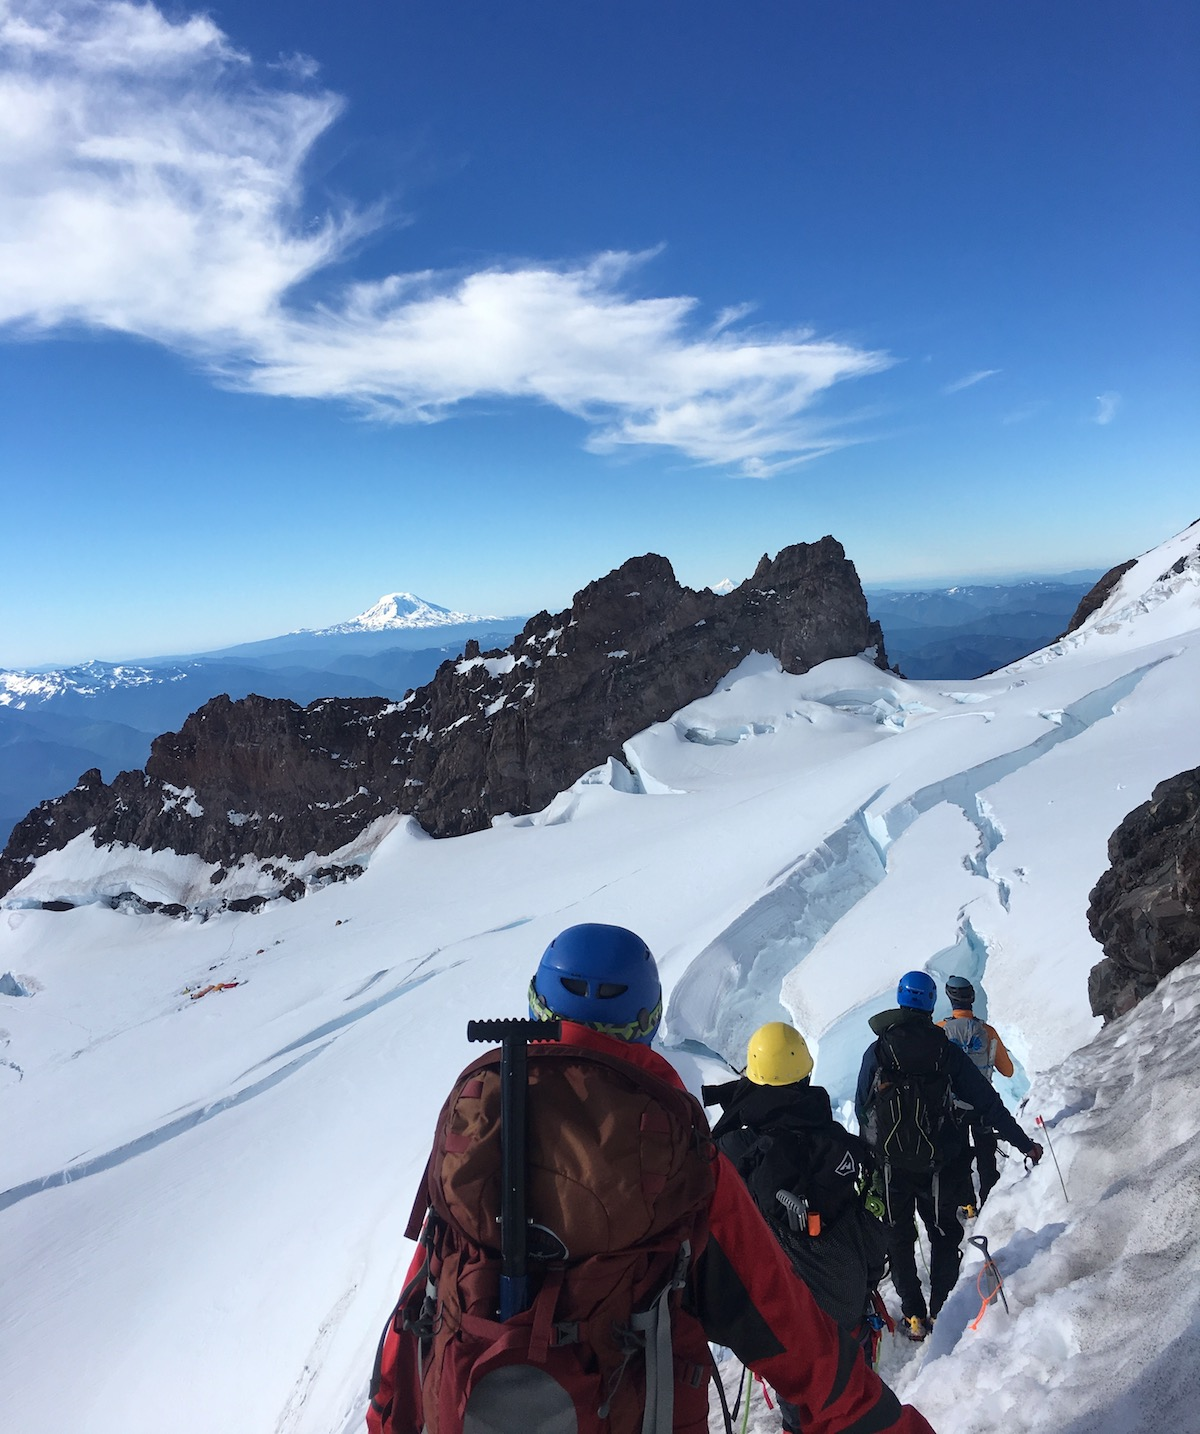 A rope team treks through the snow on Mt. Rainier